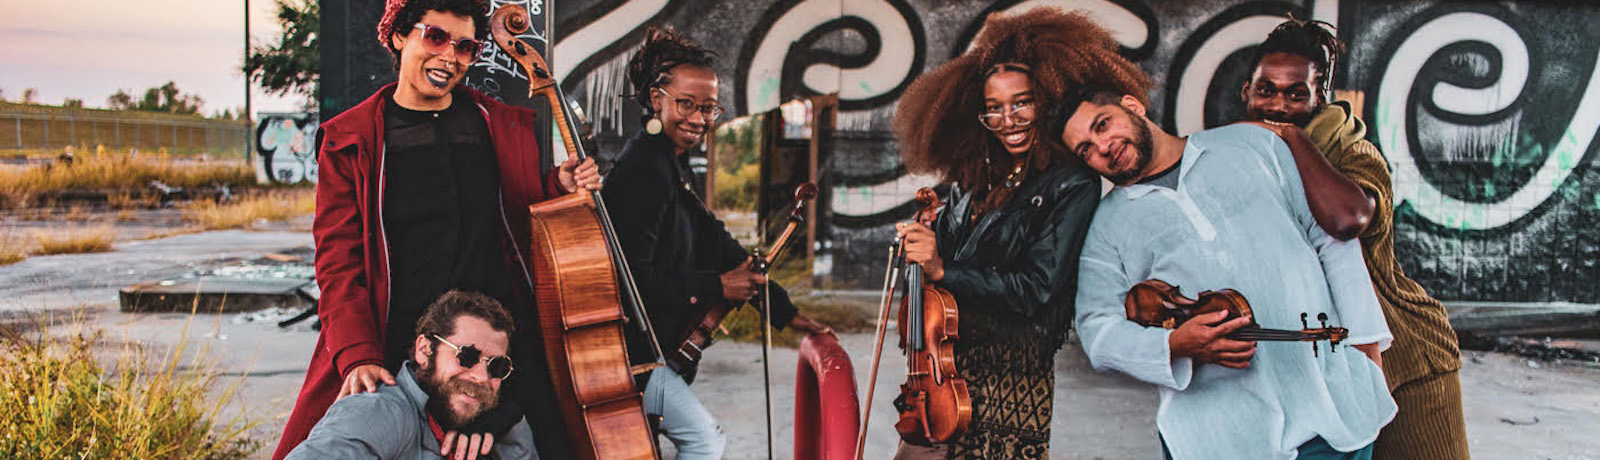 As the exhibition Inventing Acadia comes to a close, a New Orleans-based string band pays homage the Creole diaspora on Sunday, January 26th.